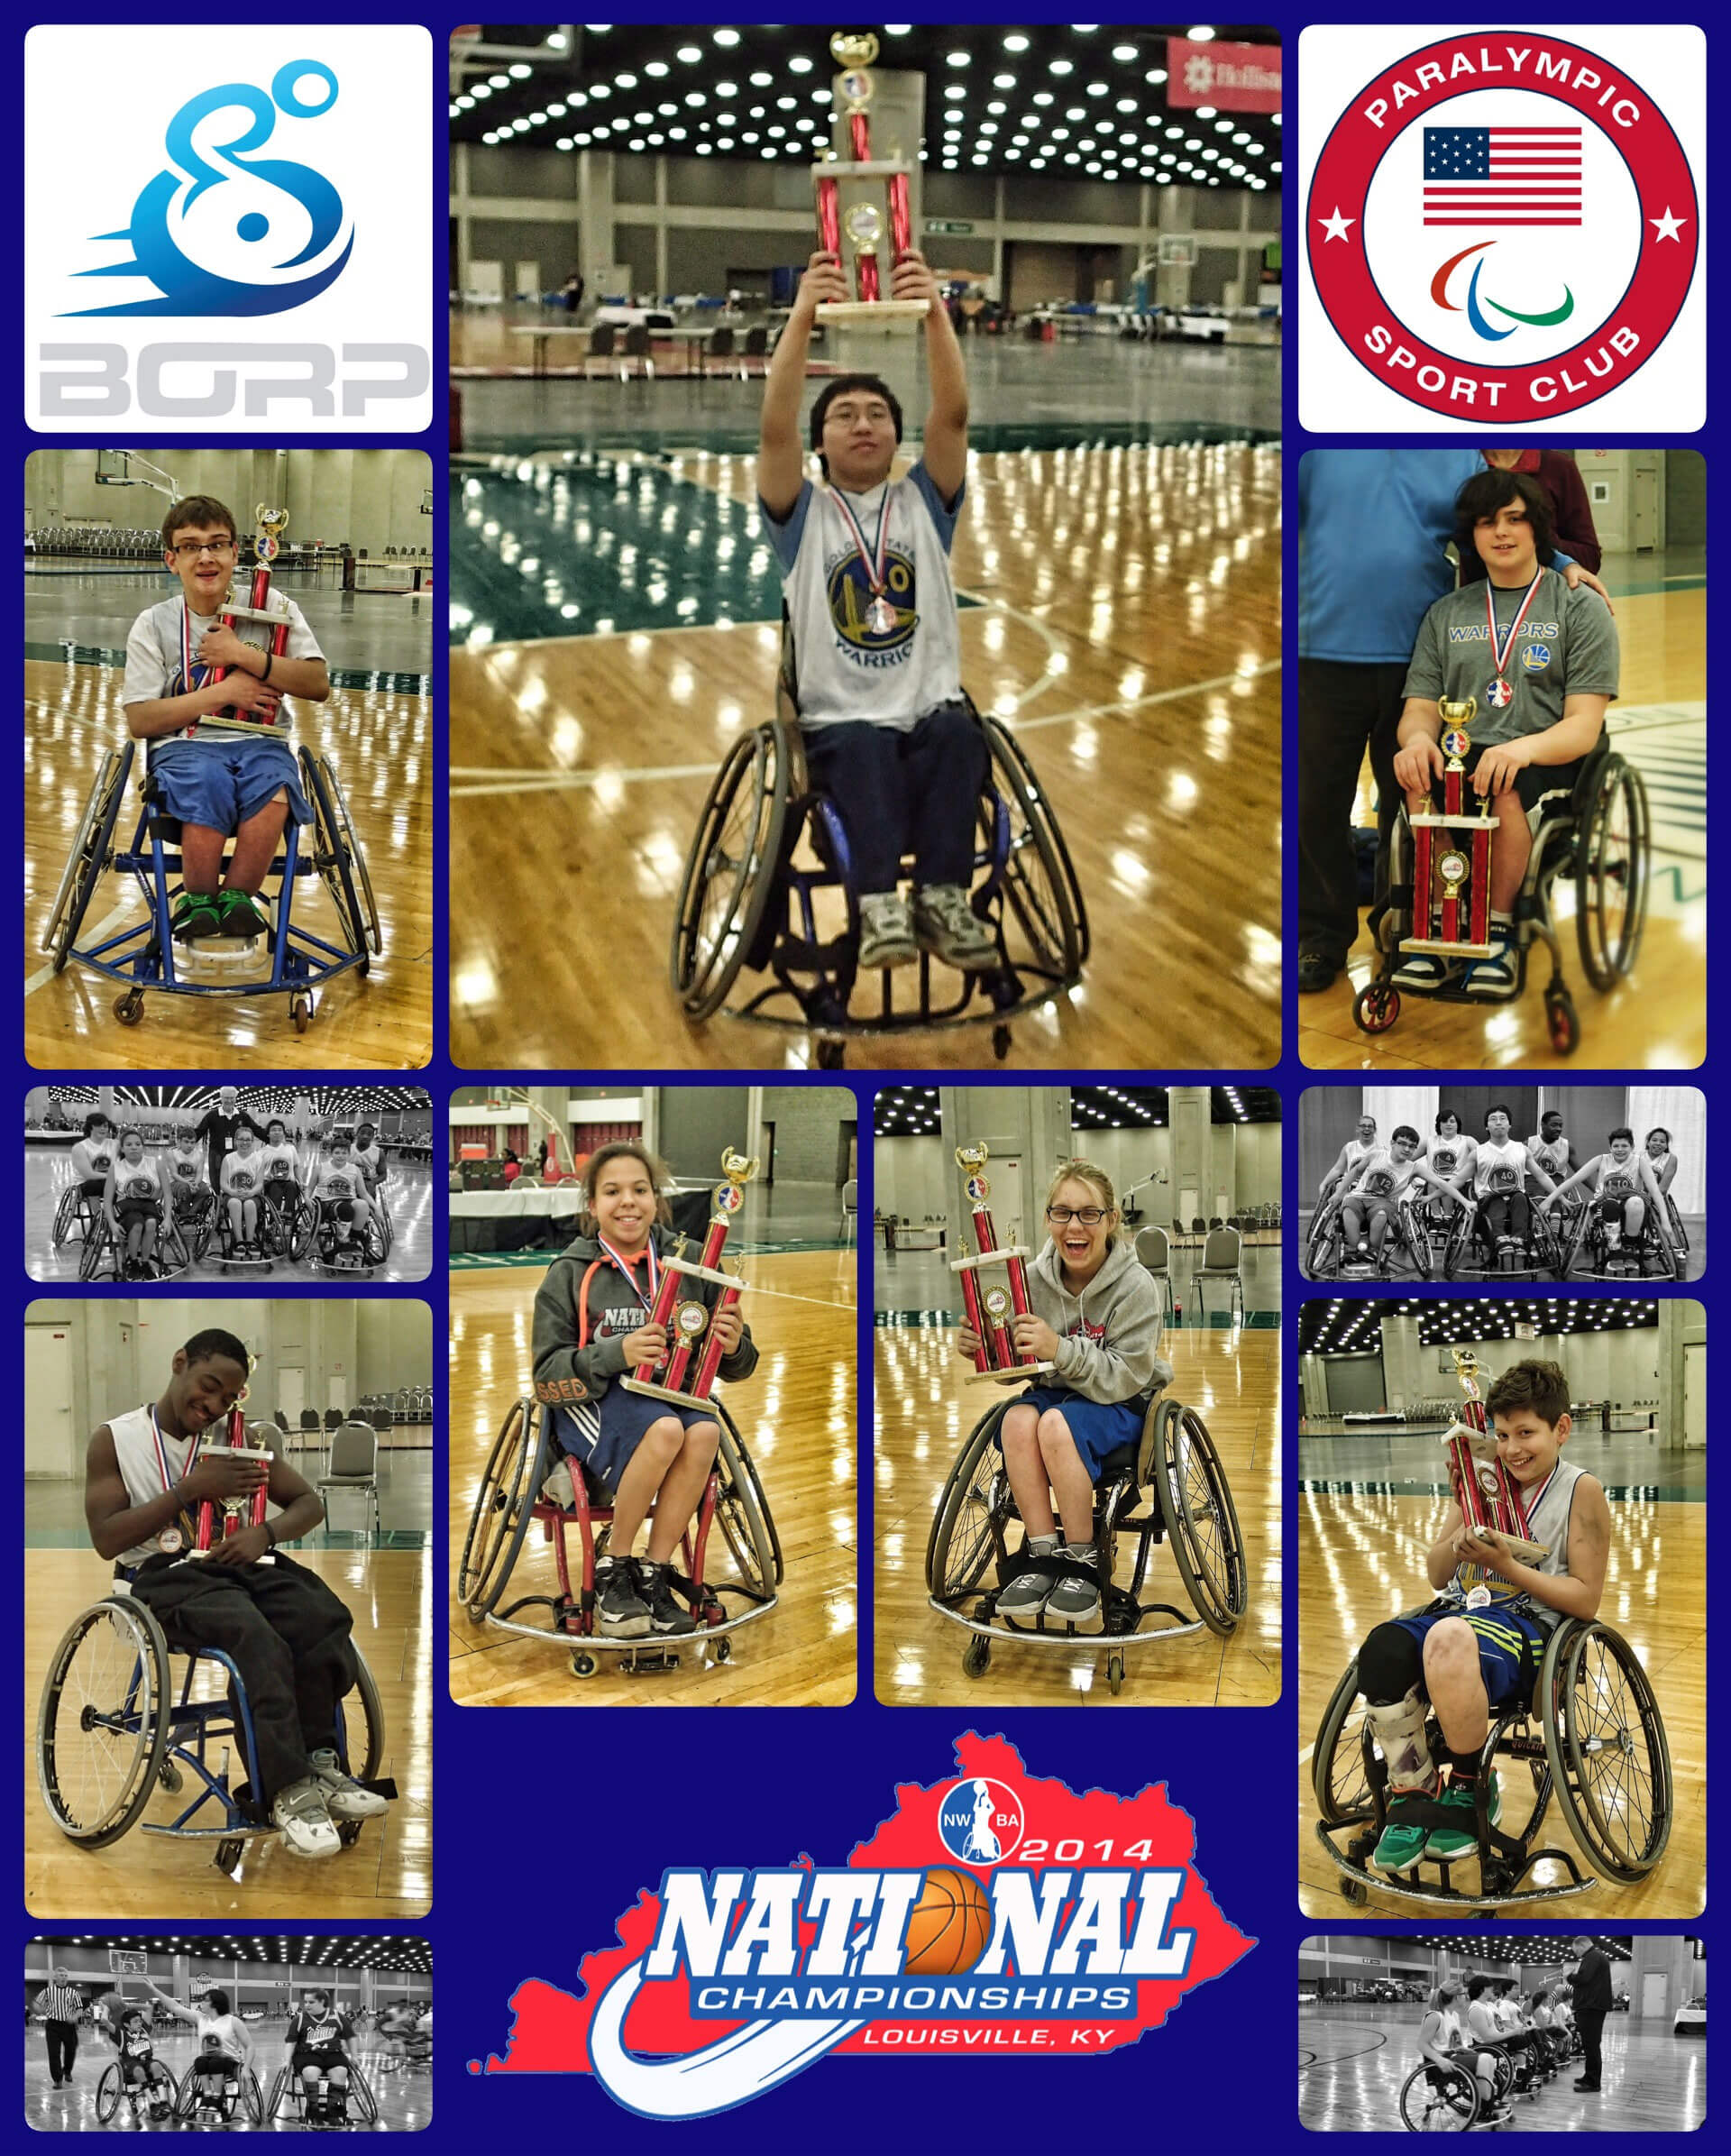 photo grid from the 2014 NWBA NAtional Championship Tournament